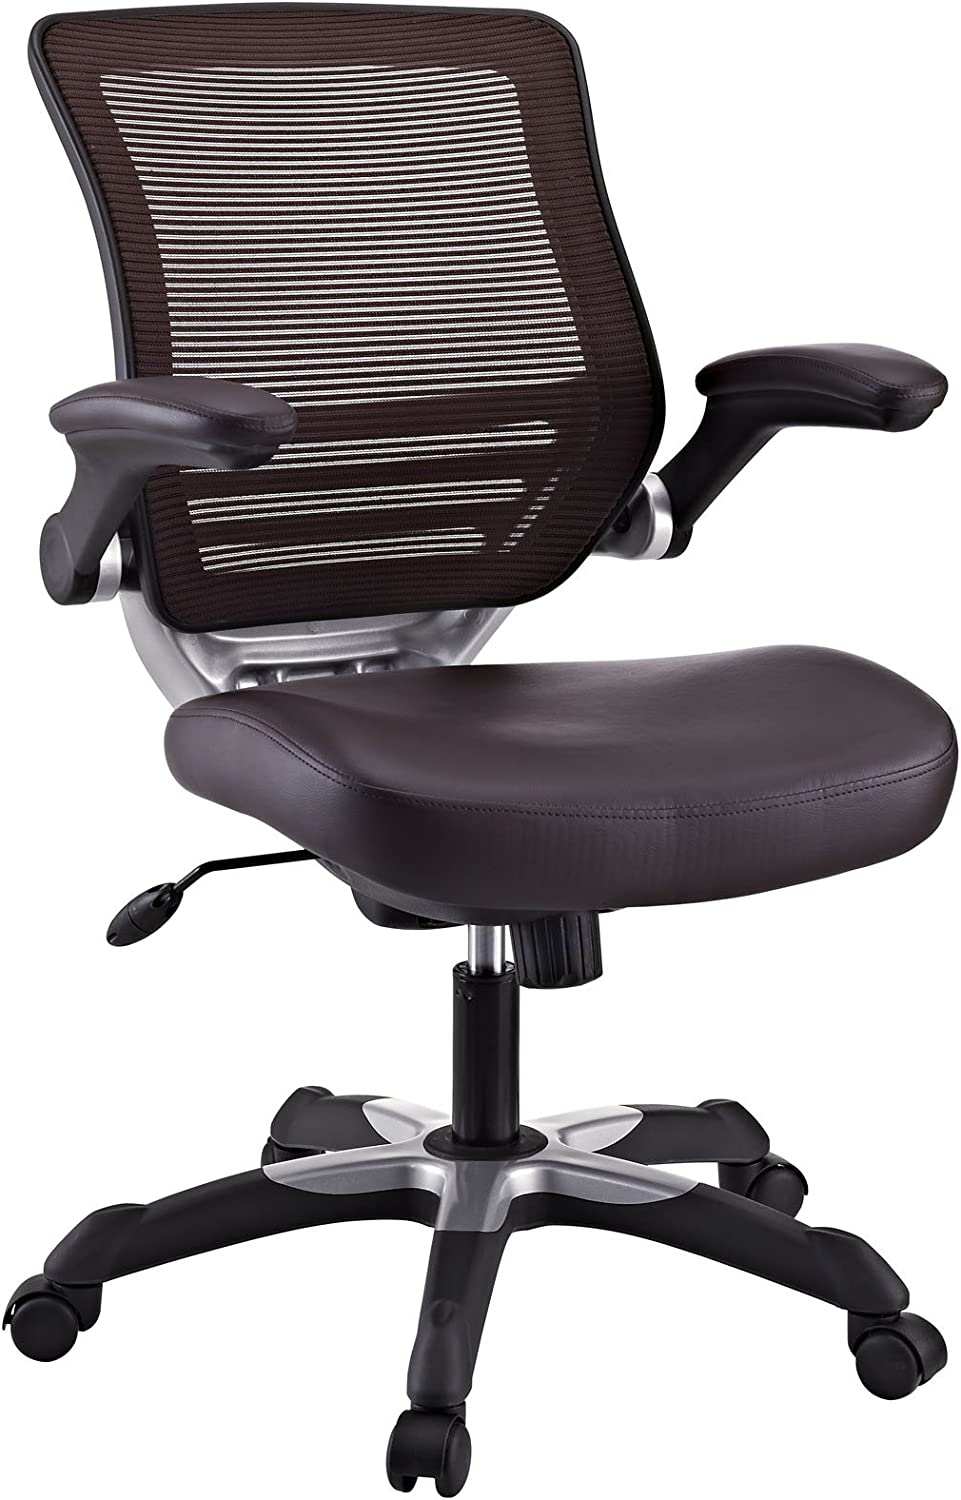 Modway Edge Mesh Back and White Vegan Leather Seat Office Chair With Flip-Up Arms-Computer Desks in Brown